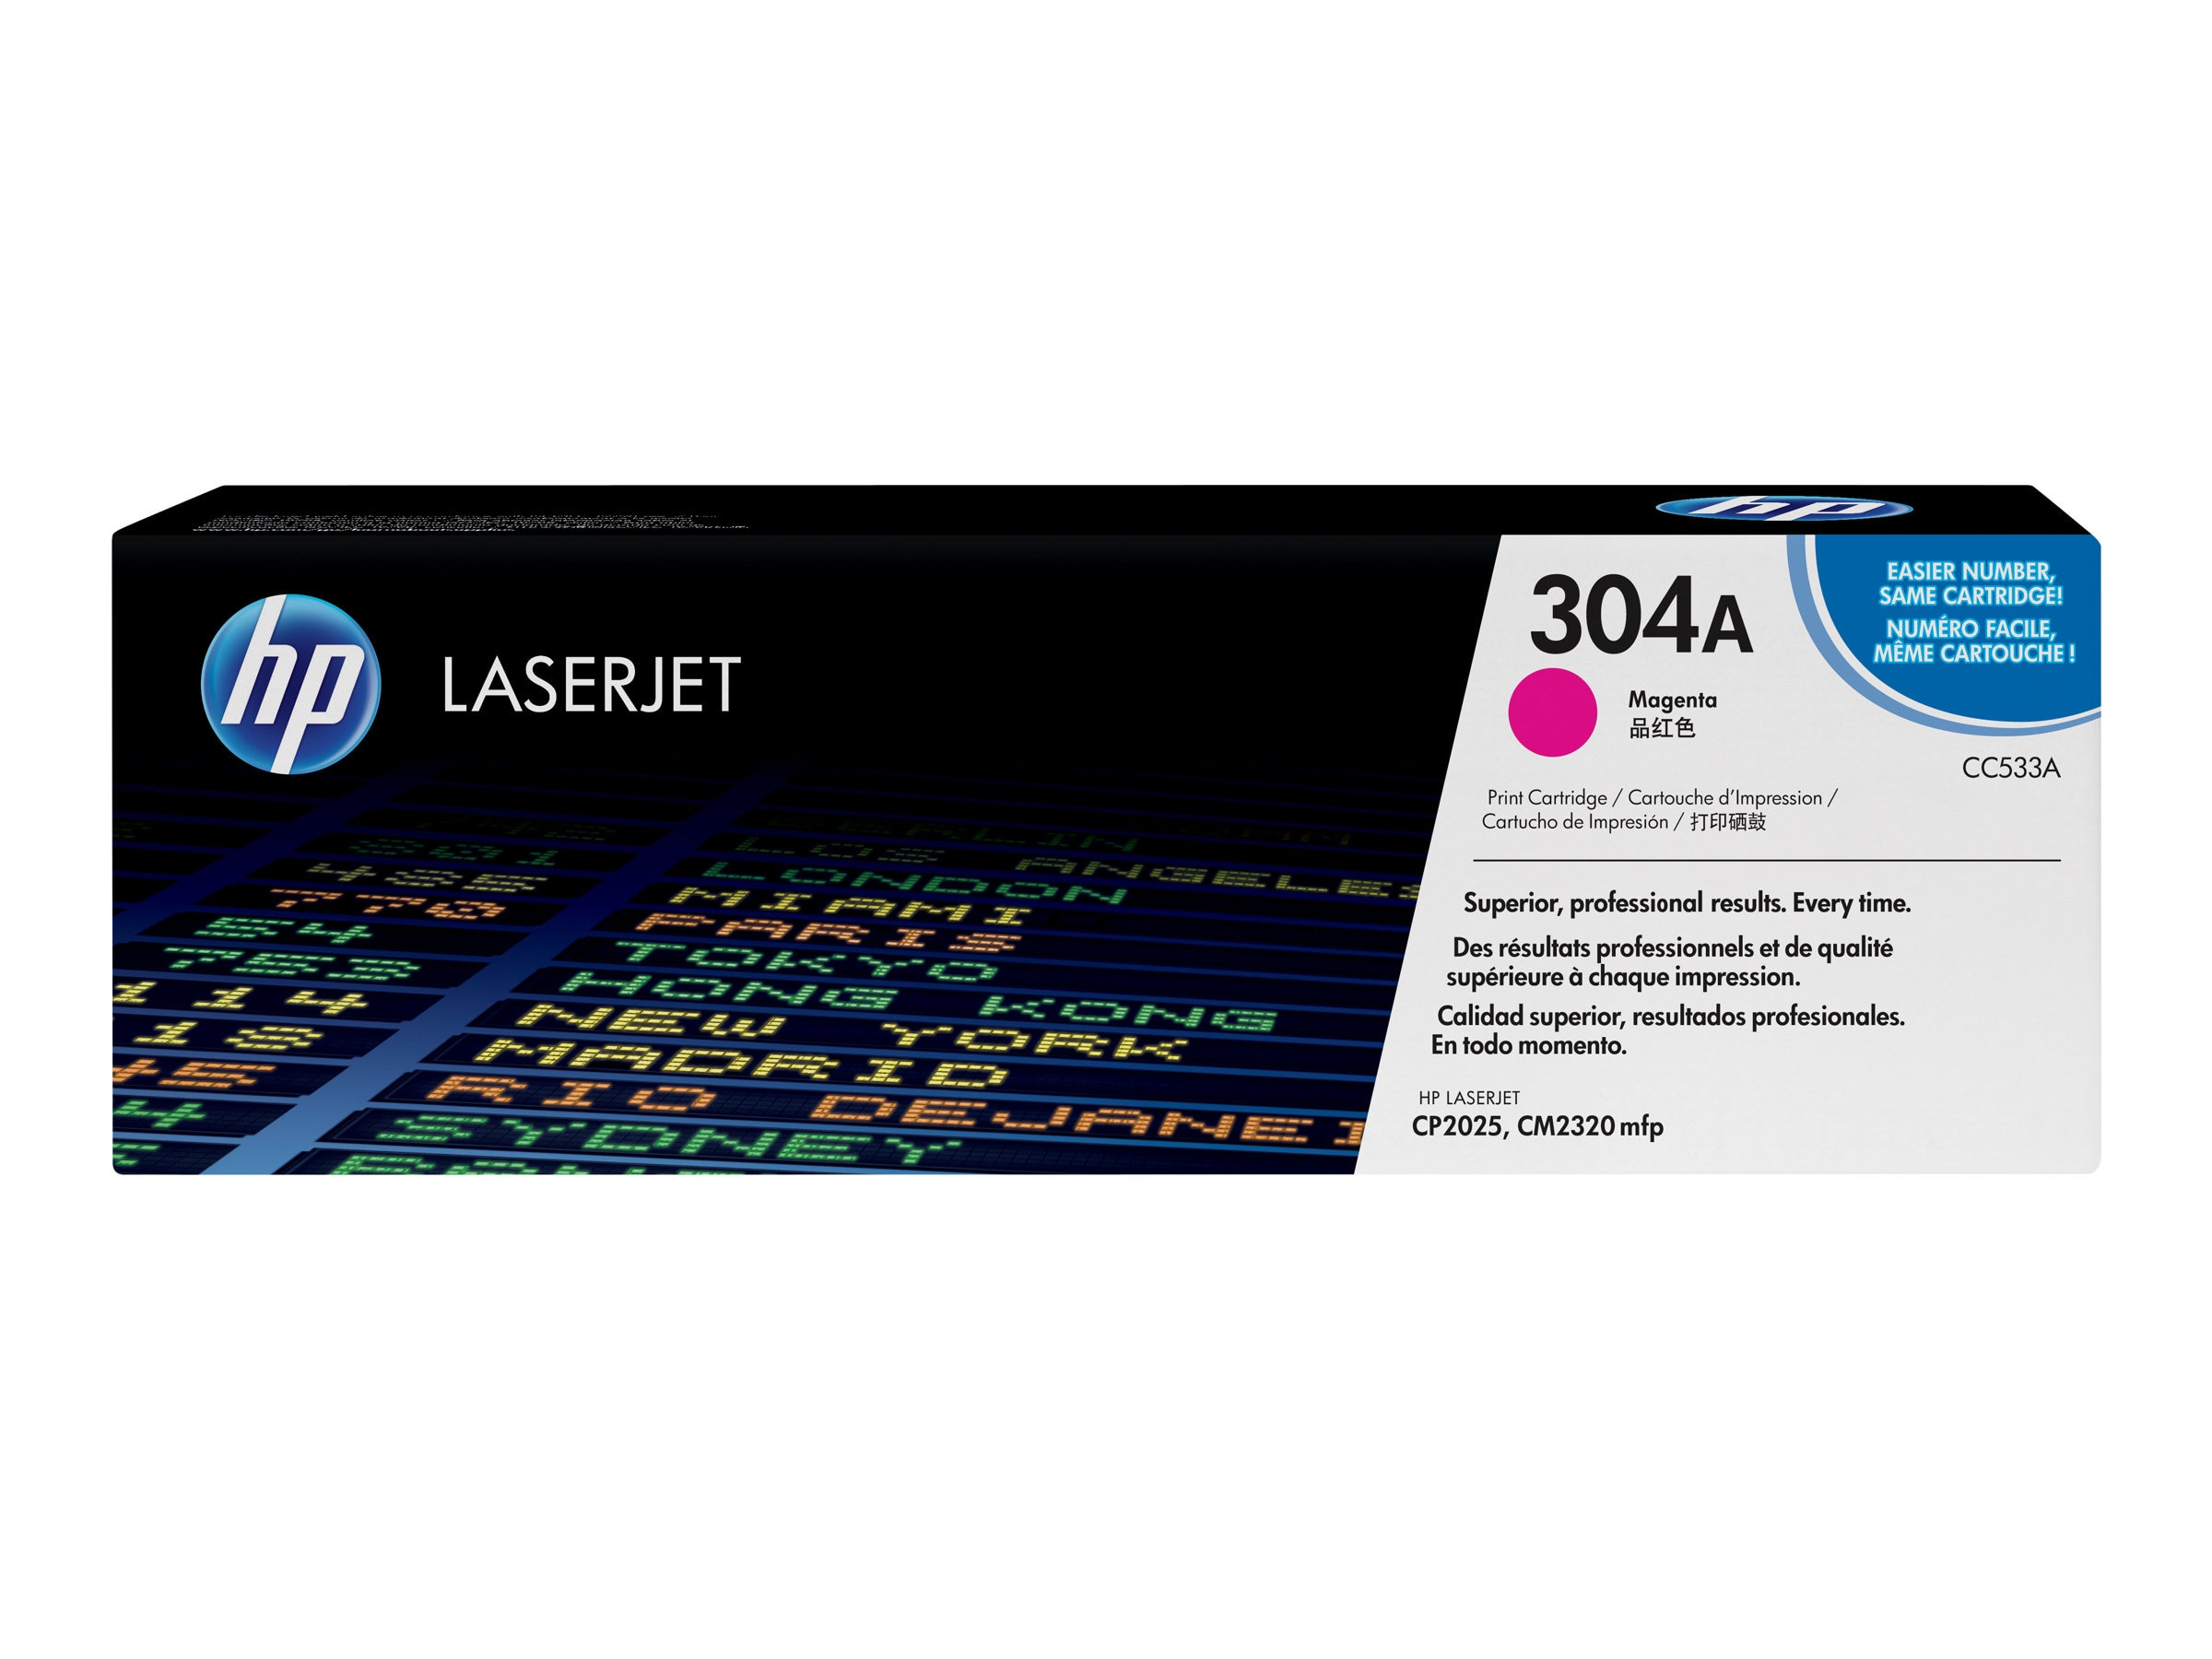 HP 304A (CC533A) Magenta Original LaserJet Toner Cartridge for HP Color LaserJet CP2025 & CM2320 MFP, CC533A